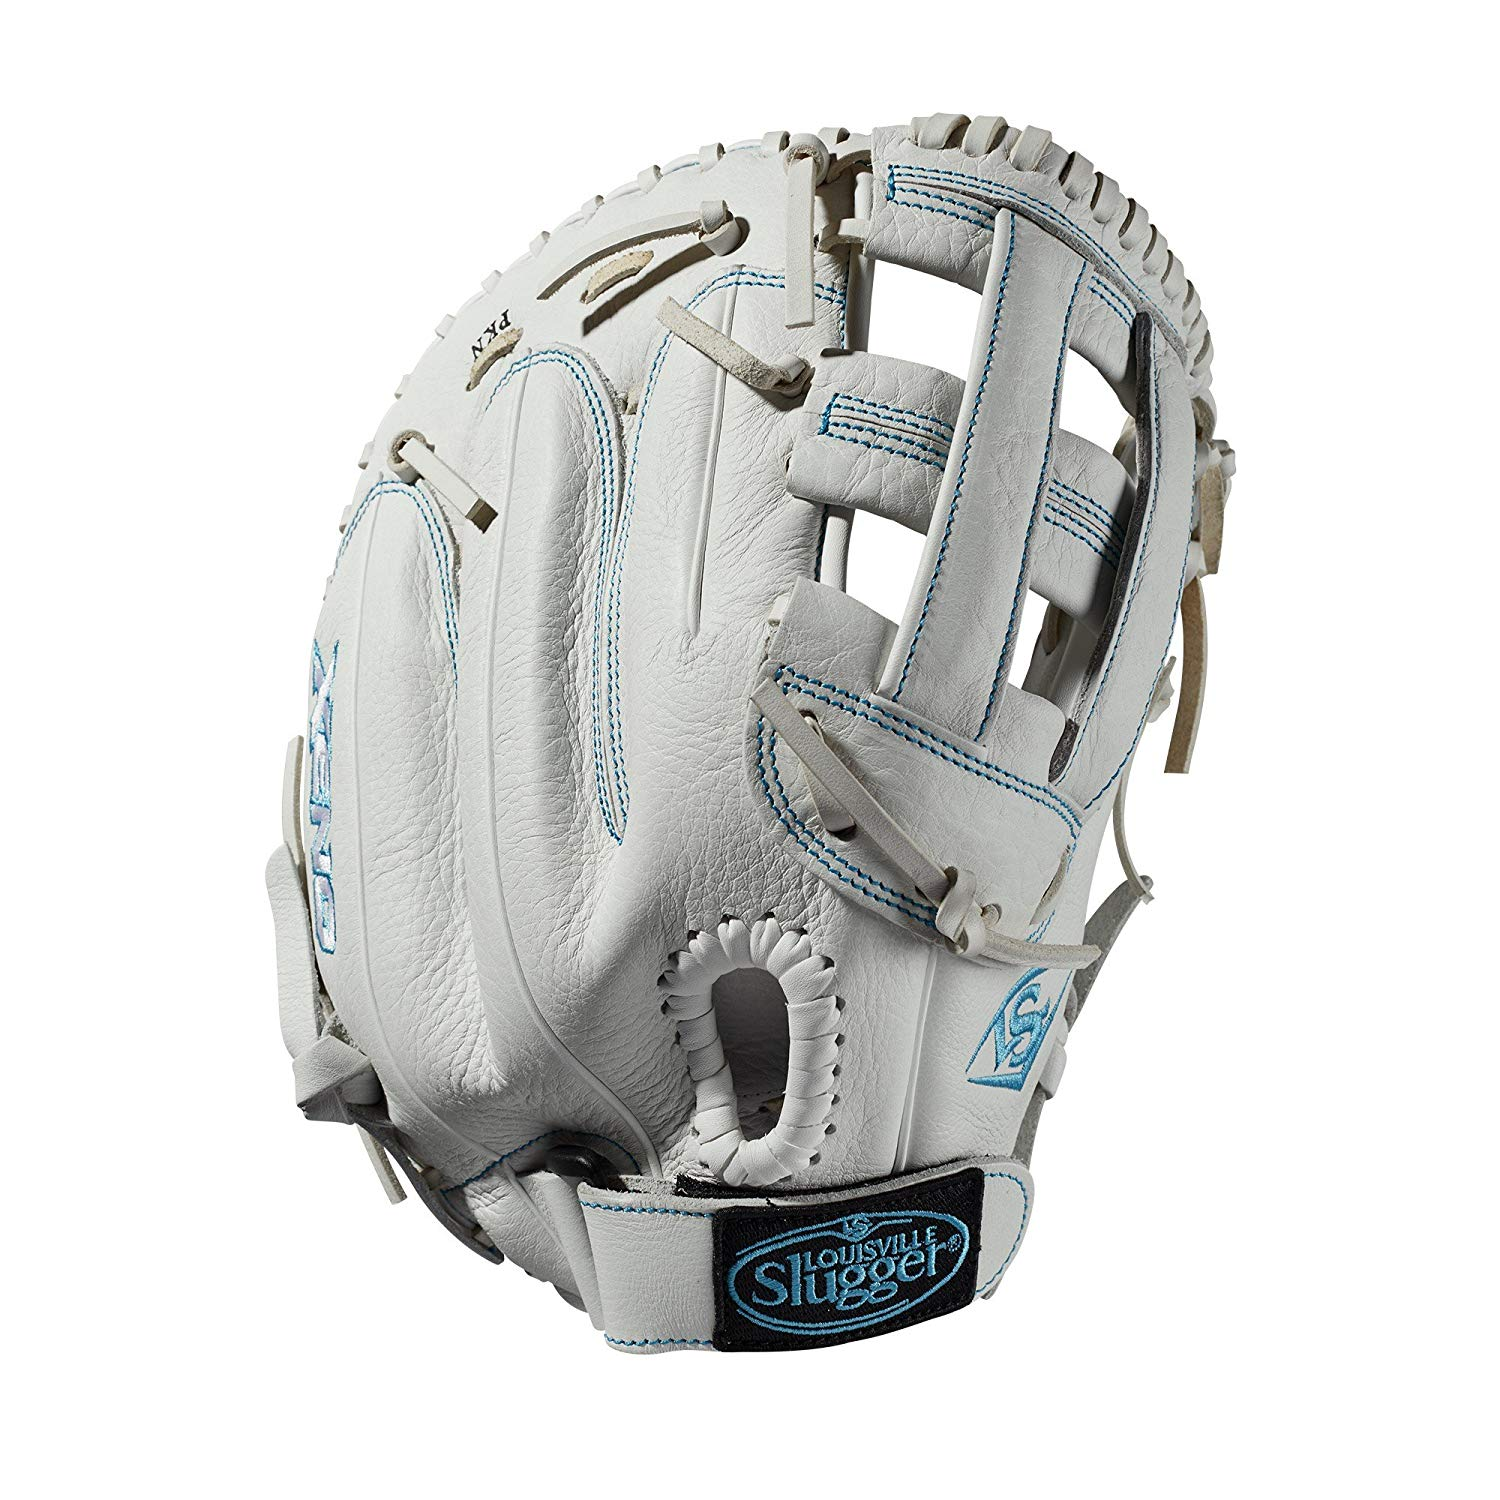 louisville-slugger-xeno-first-base-mitt-fastpitch-sofball-glove-13-right-hand-throw WTLXNRF19BM-RightHandThrow   13 first base glove Dual post web Memory foam wrist lining